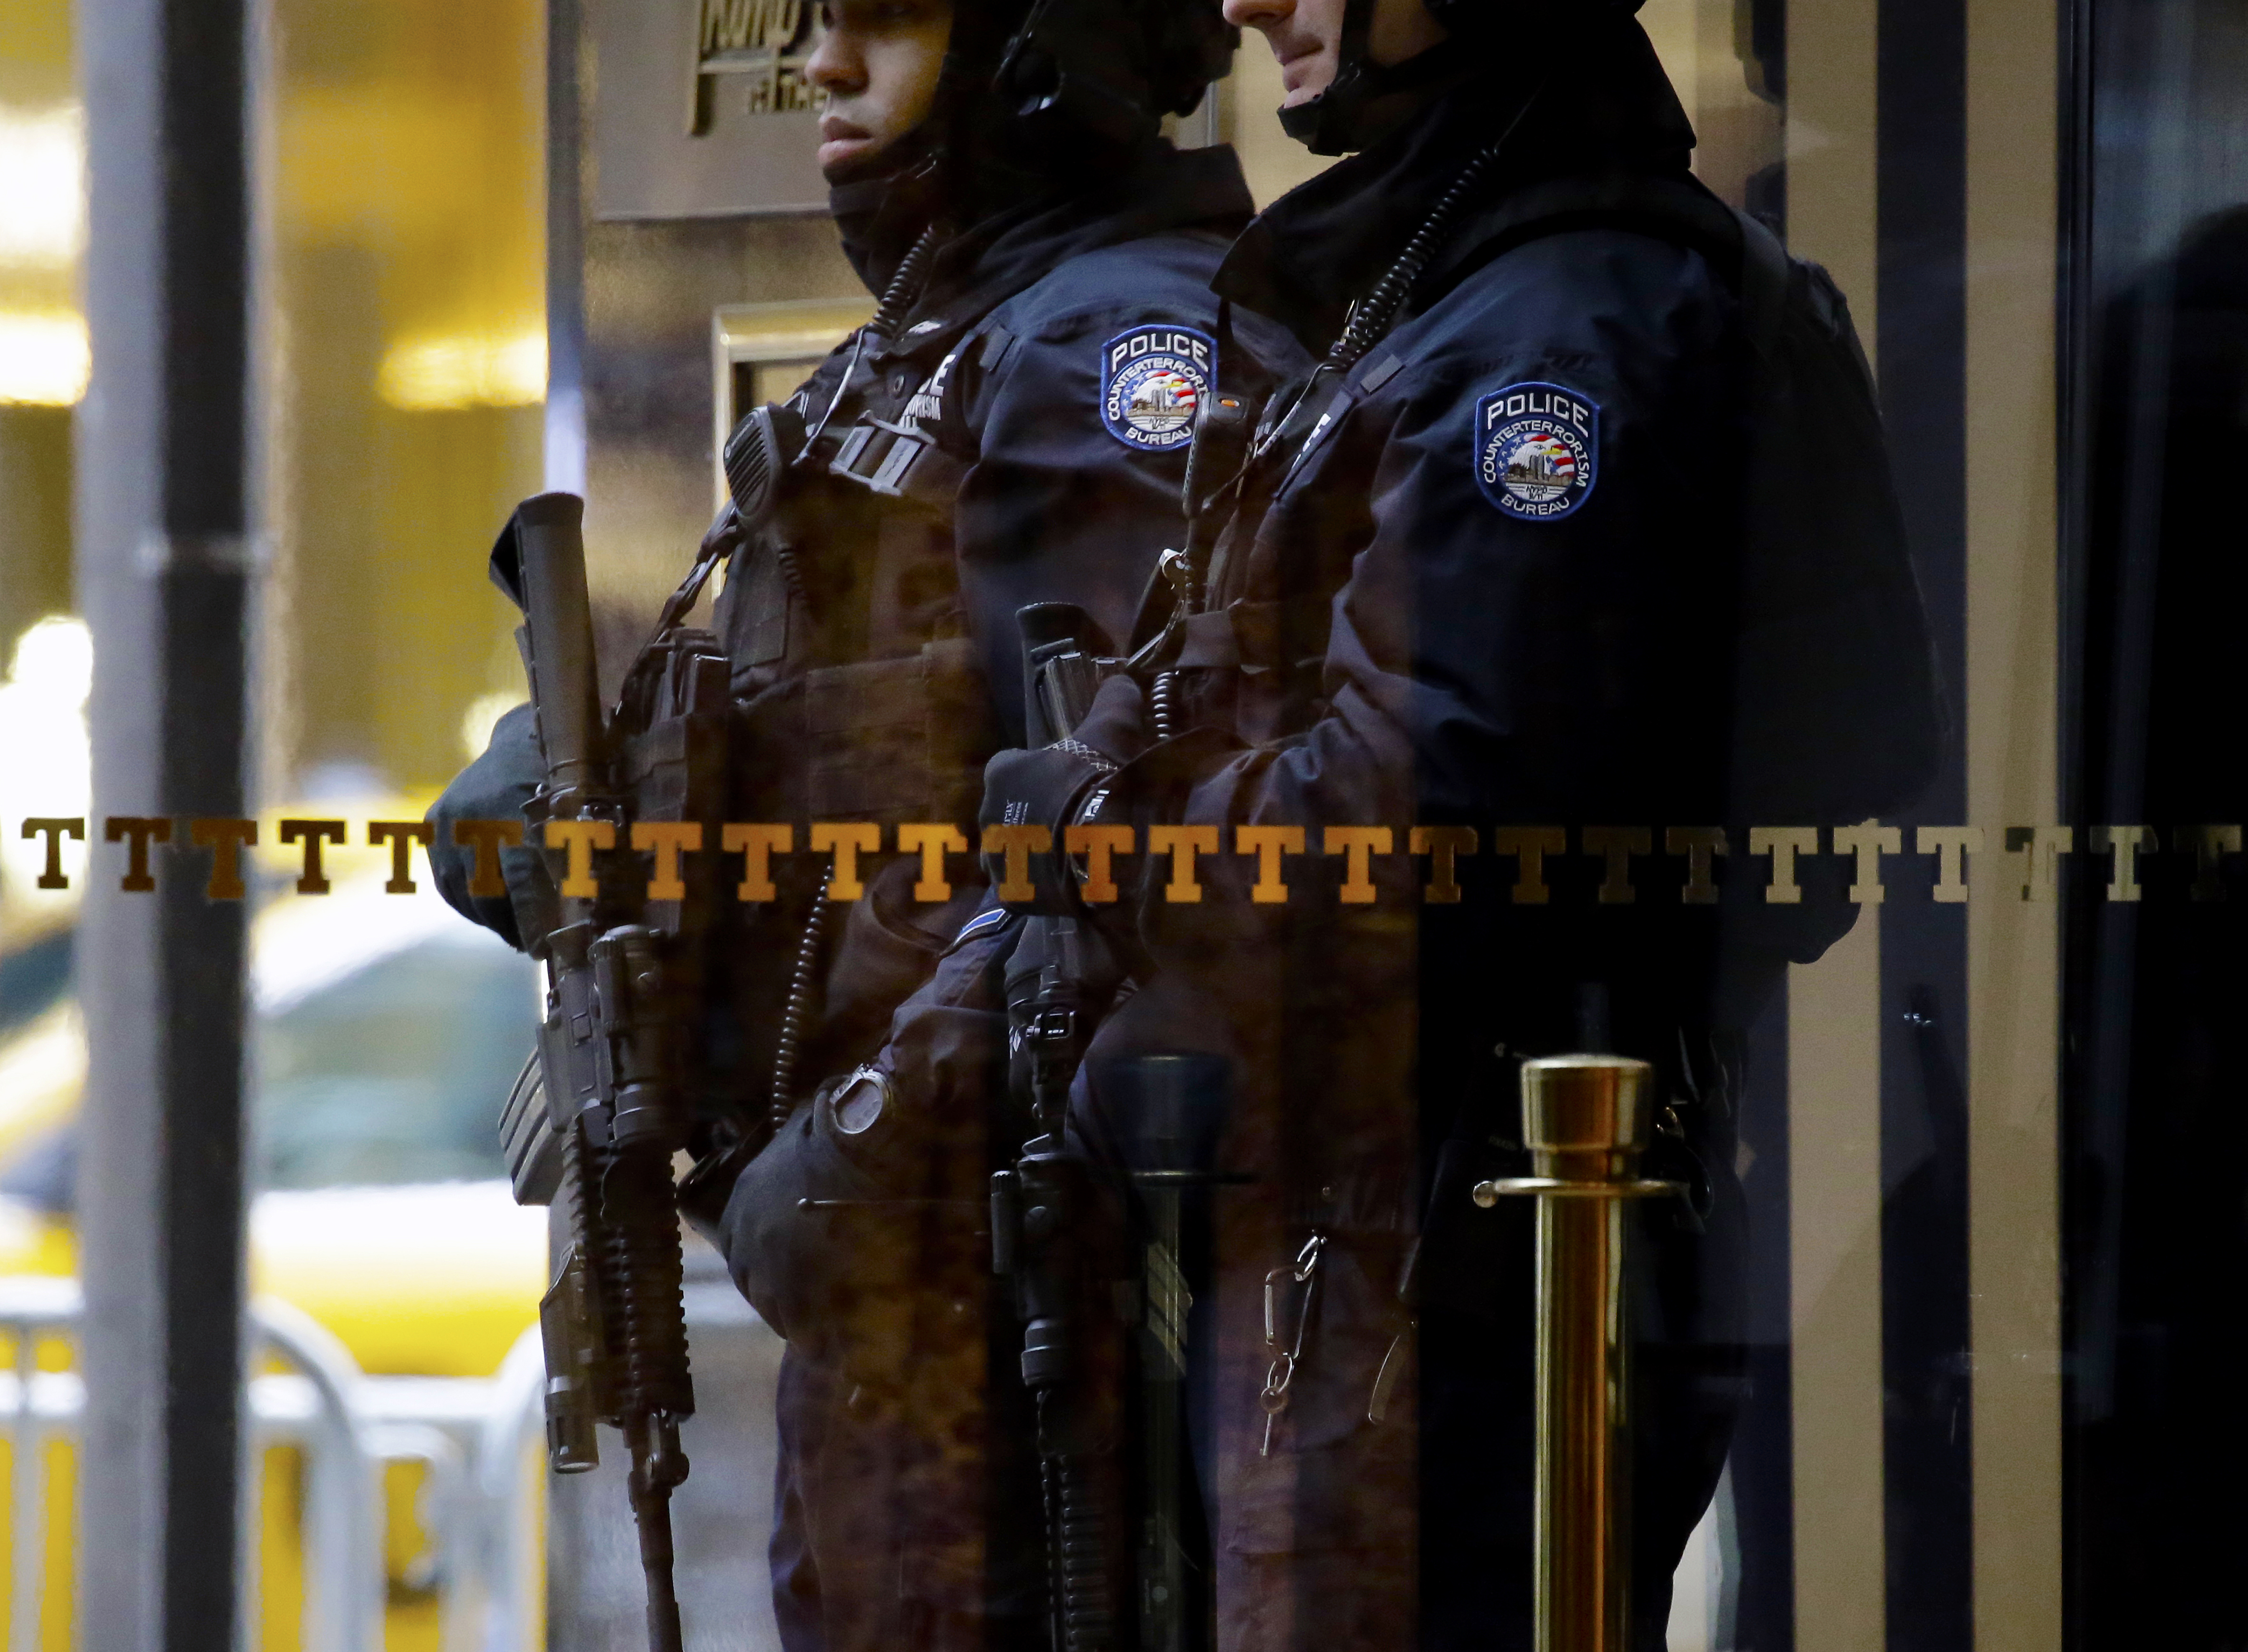 New York Police Department (NYPD) counterterrorism officers stand armed outside of Trump Tower in New York, on Jan. 2, 2017.